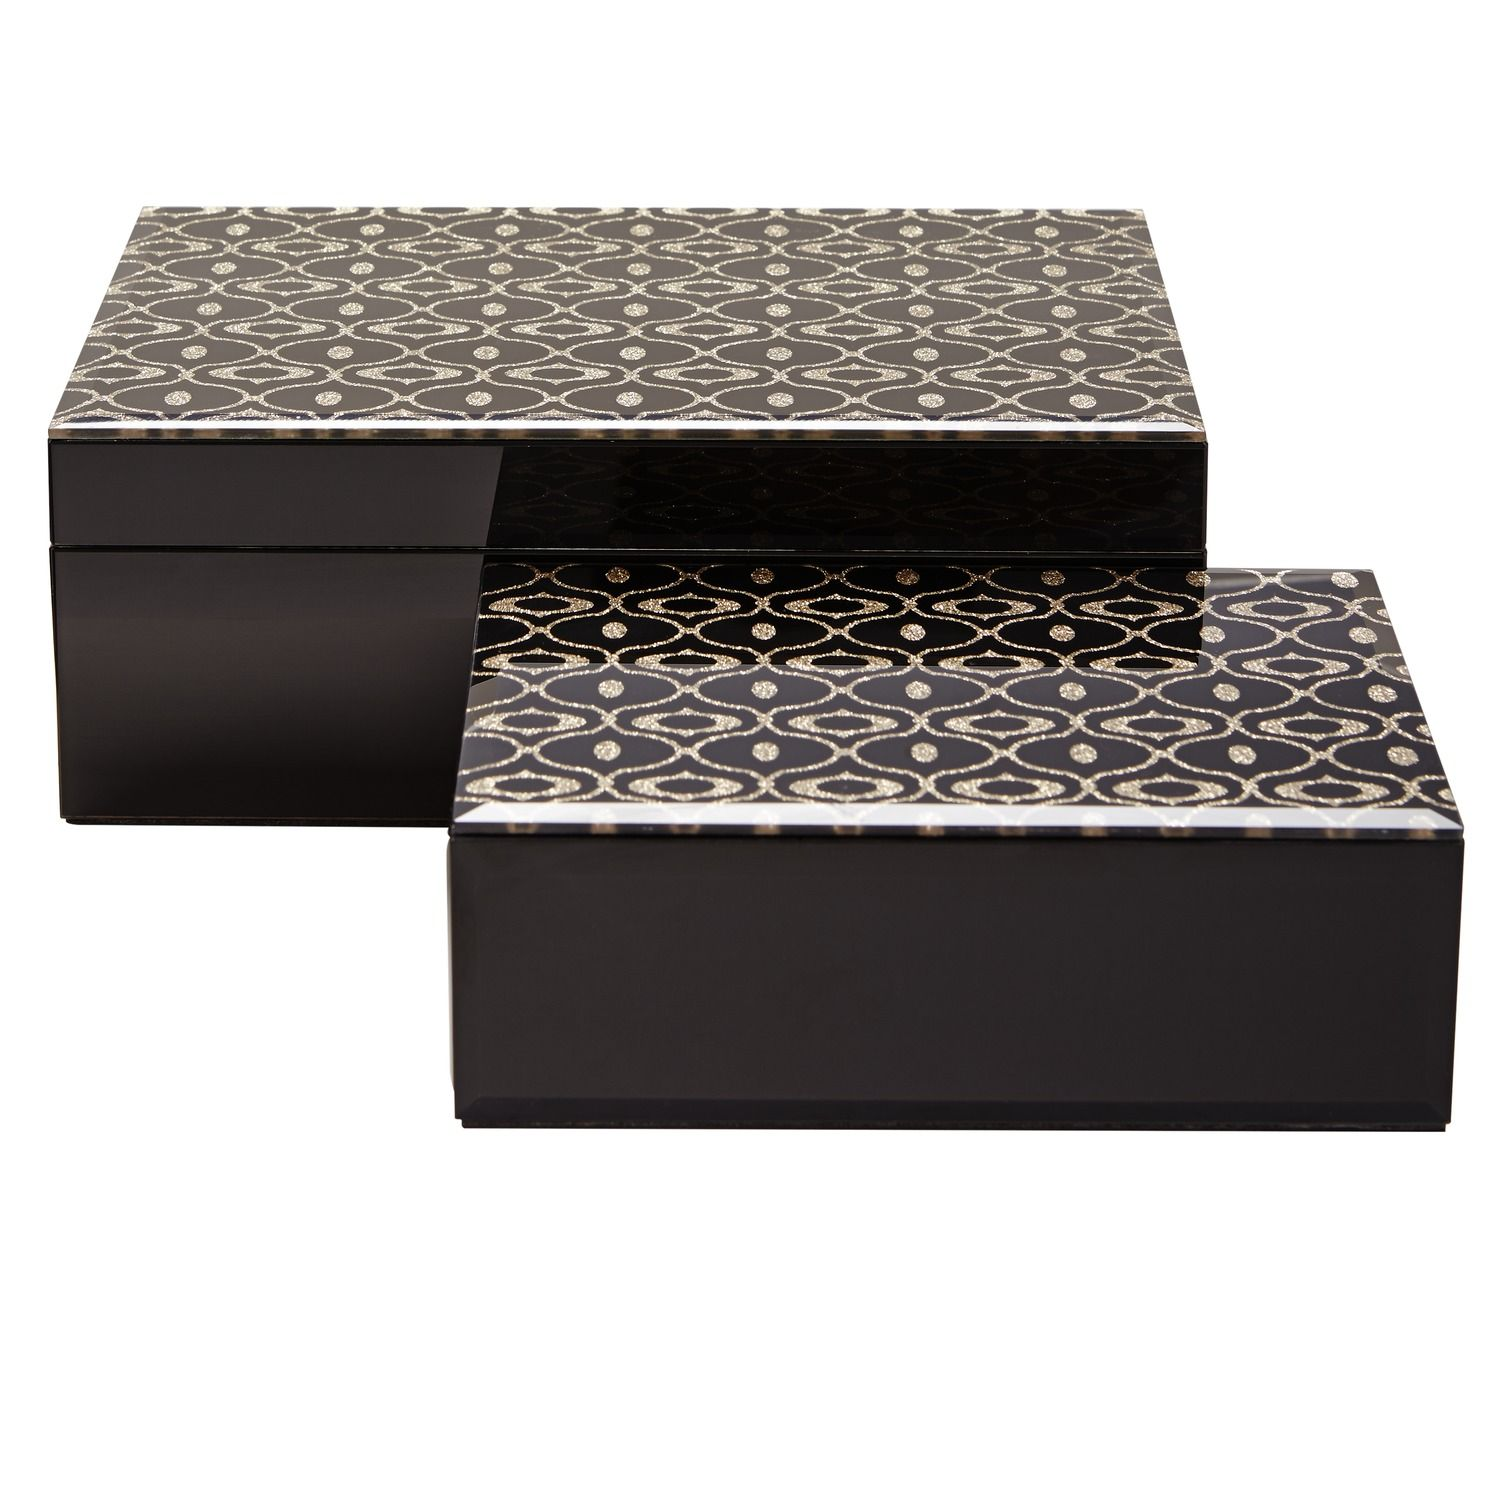 modern decorative boxes for perfume storage  decorative box  - modern decorative boxes for perfume storage